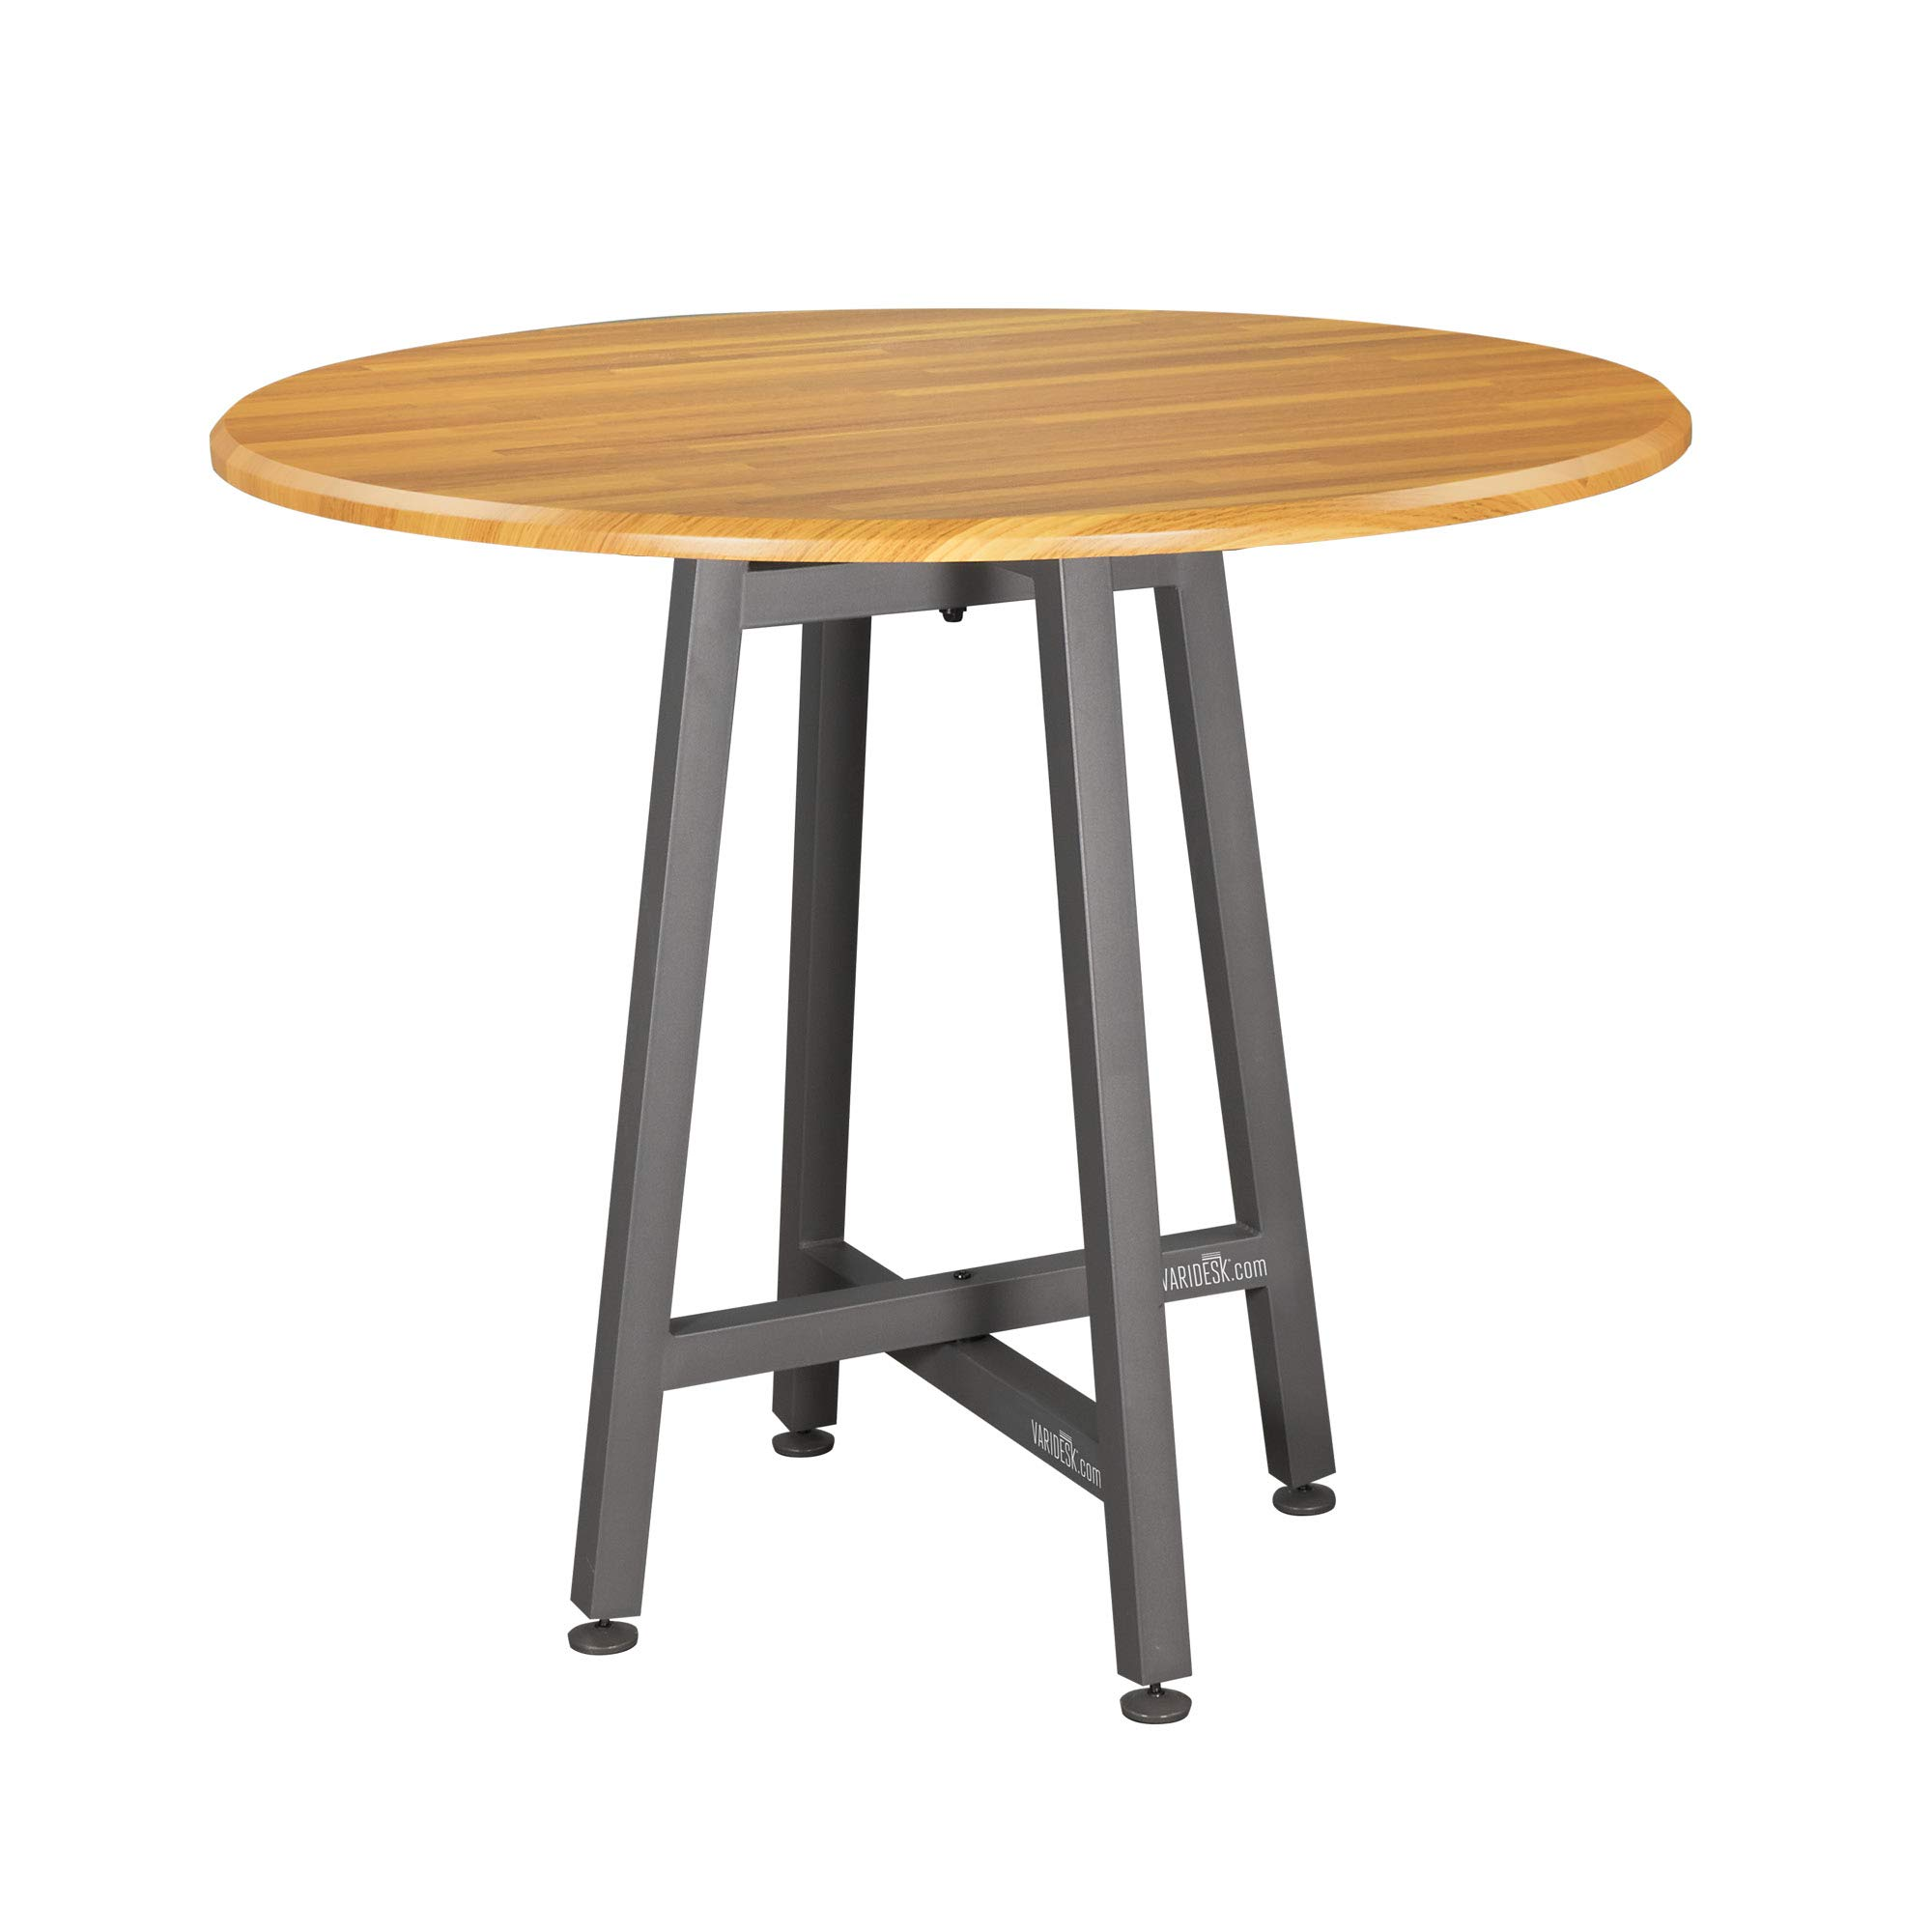 VARIDESK - QuickPro Round Top Conference Table